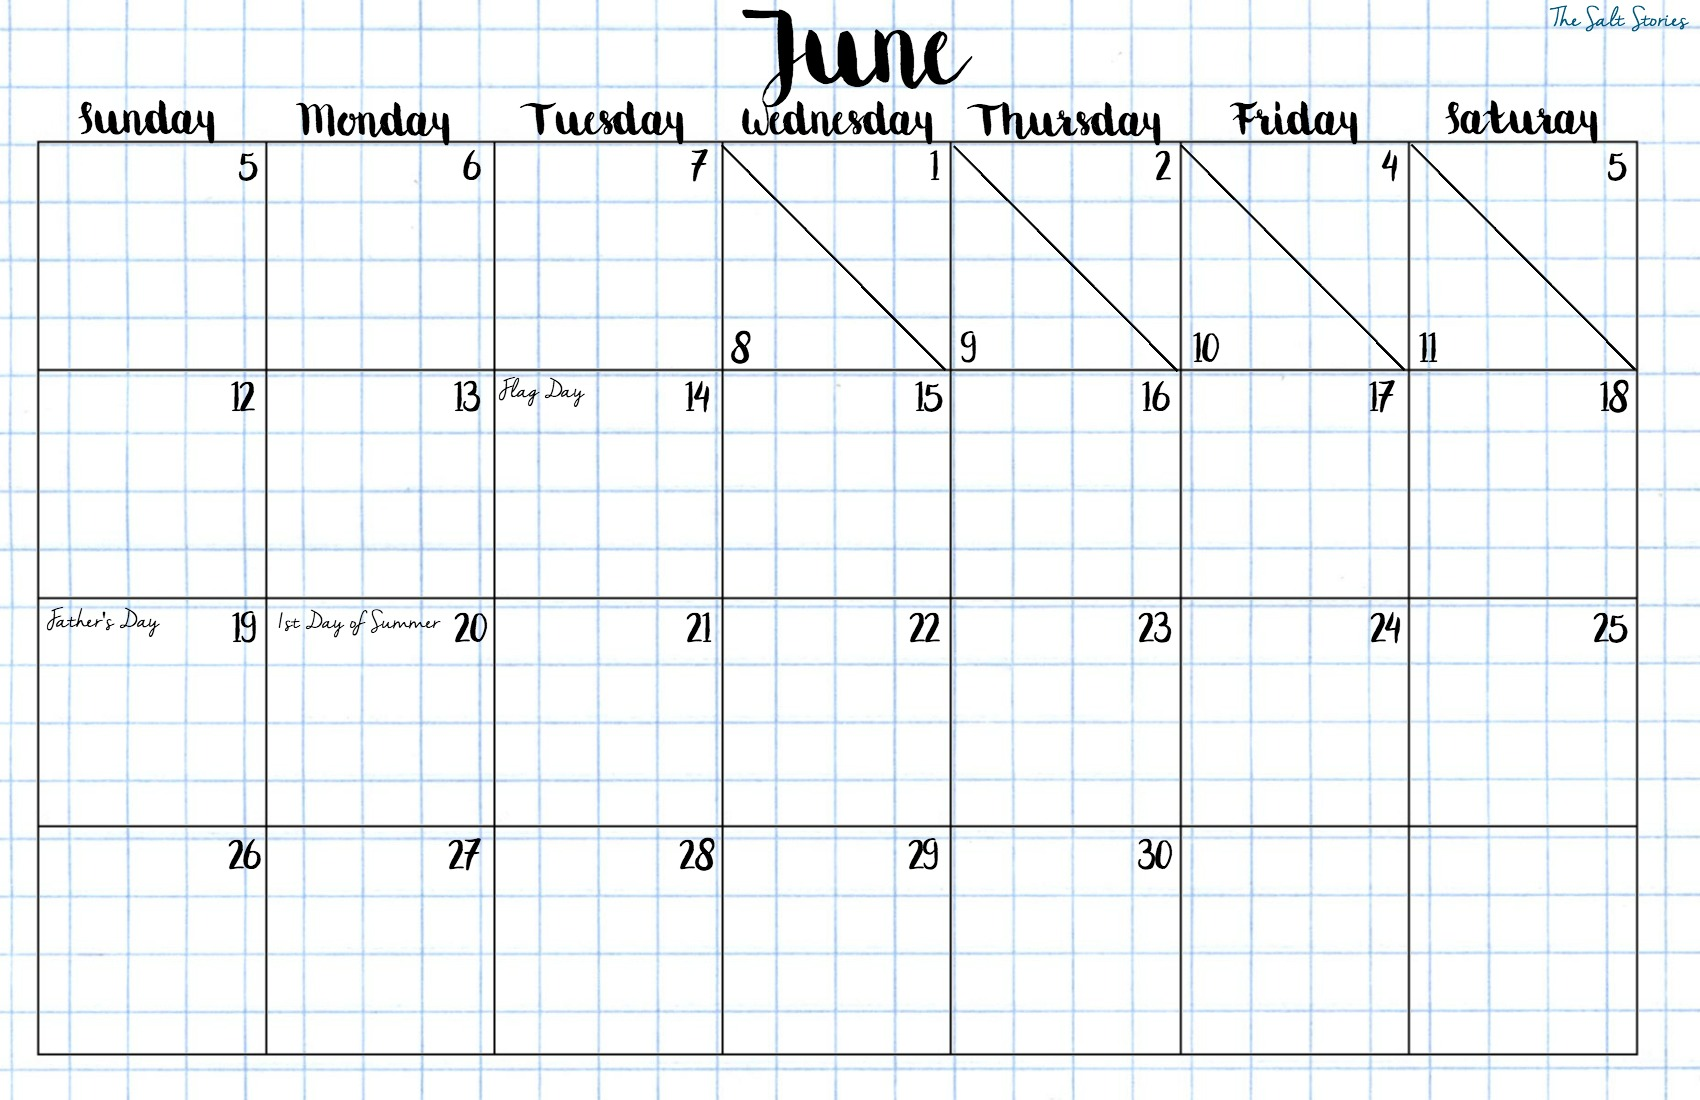 june-calendar-no-saints